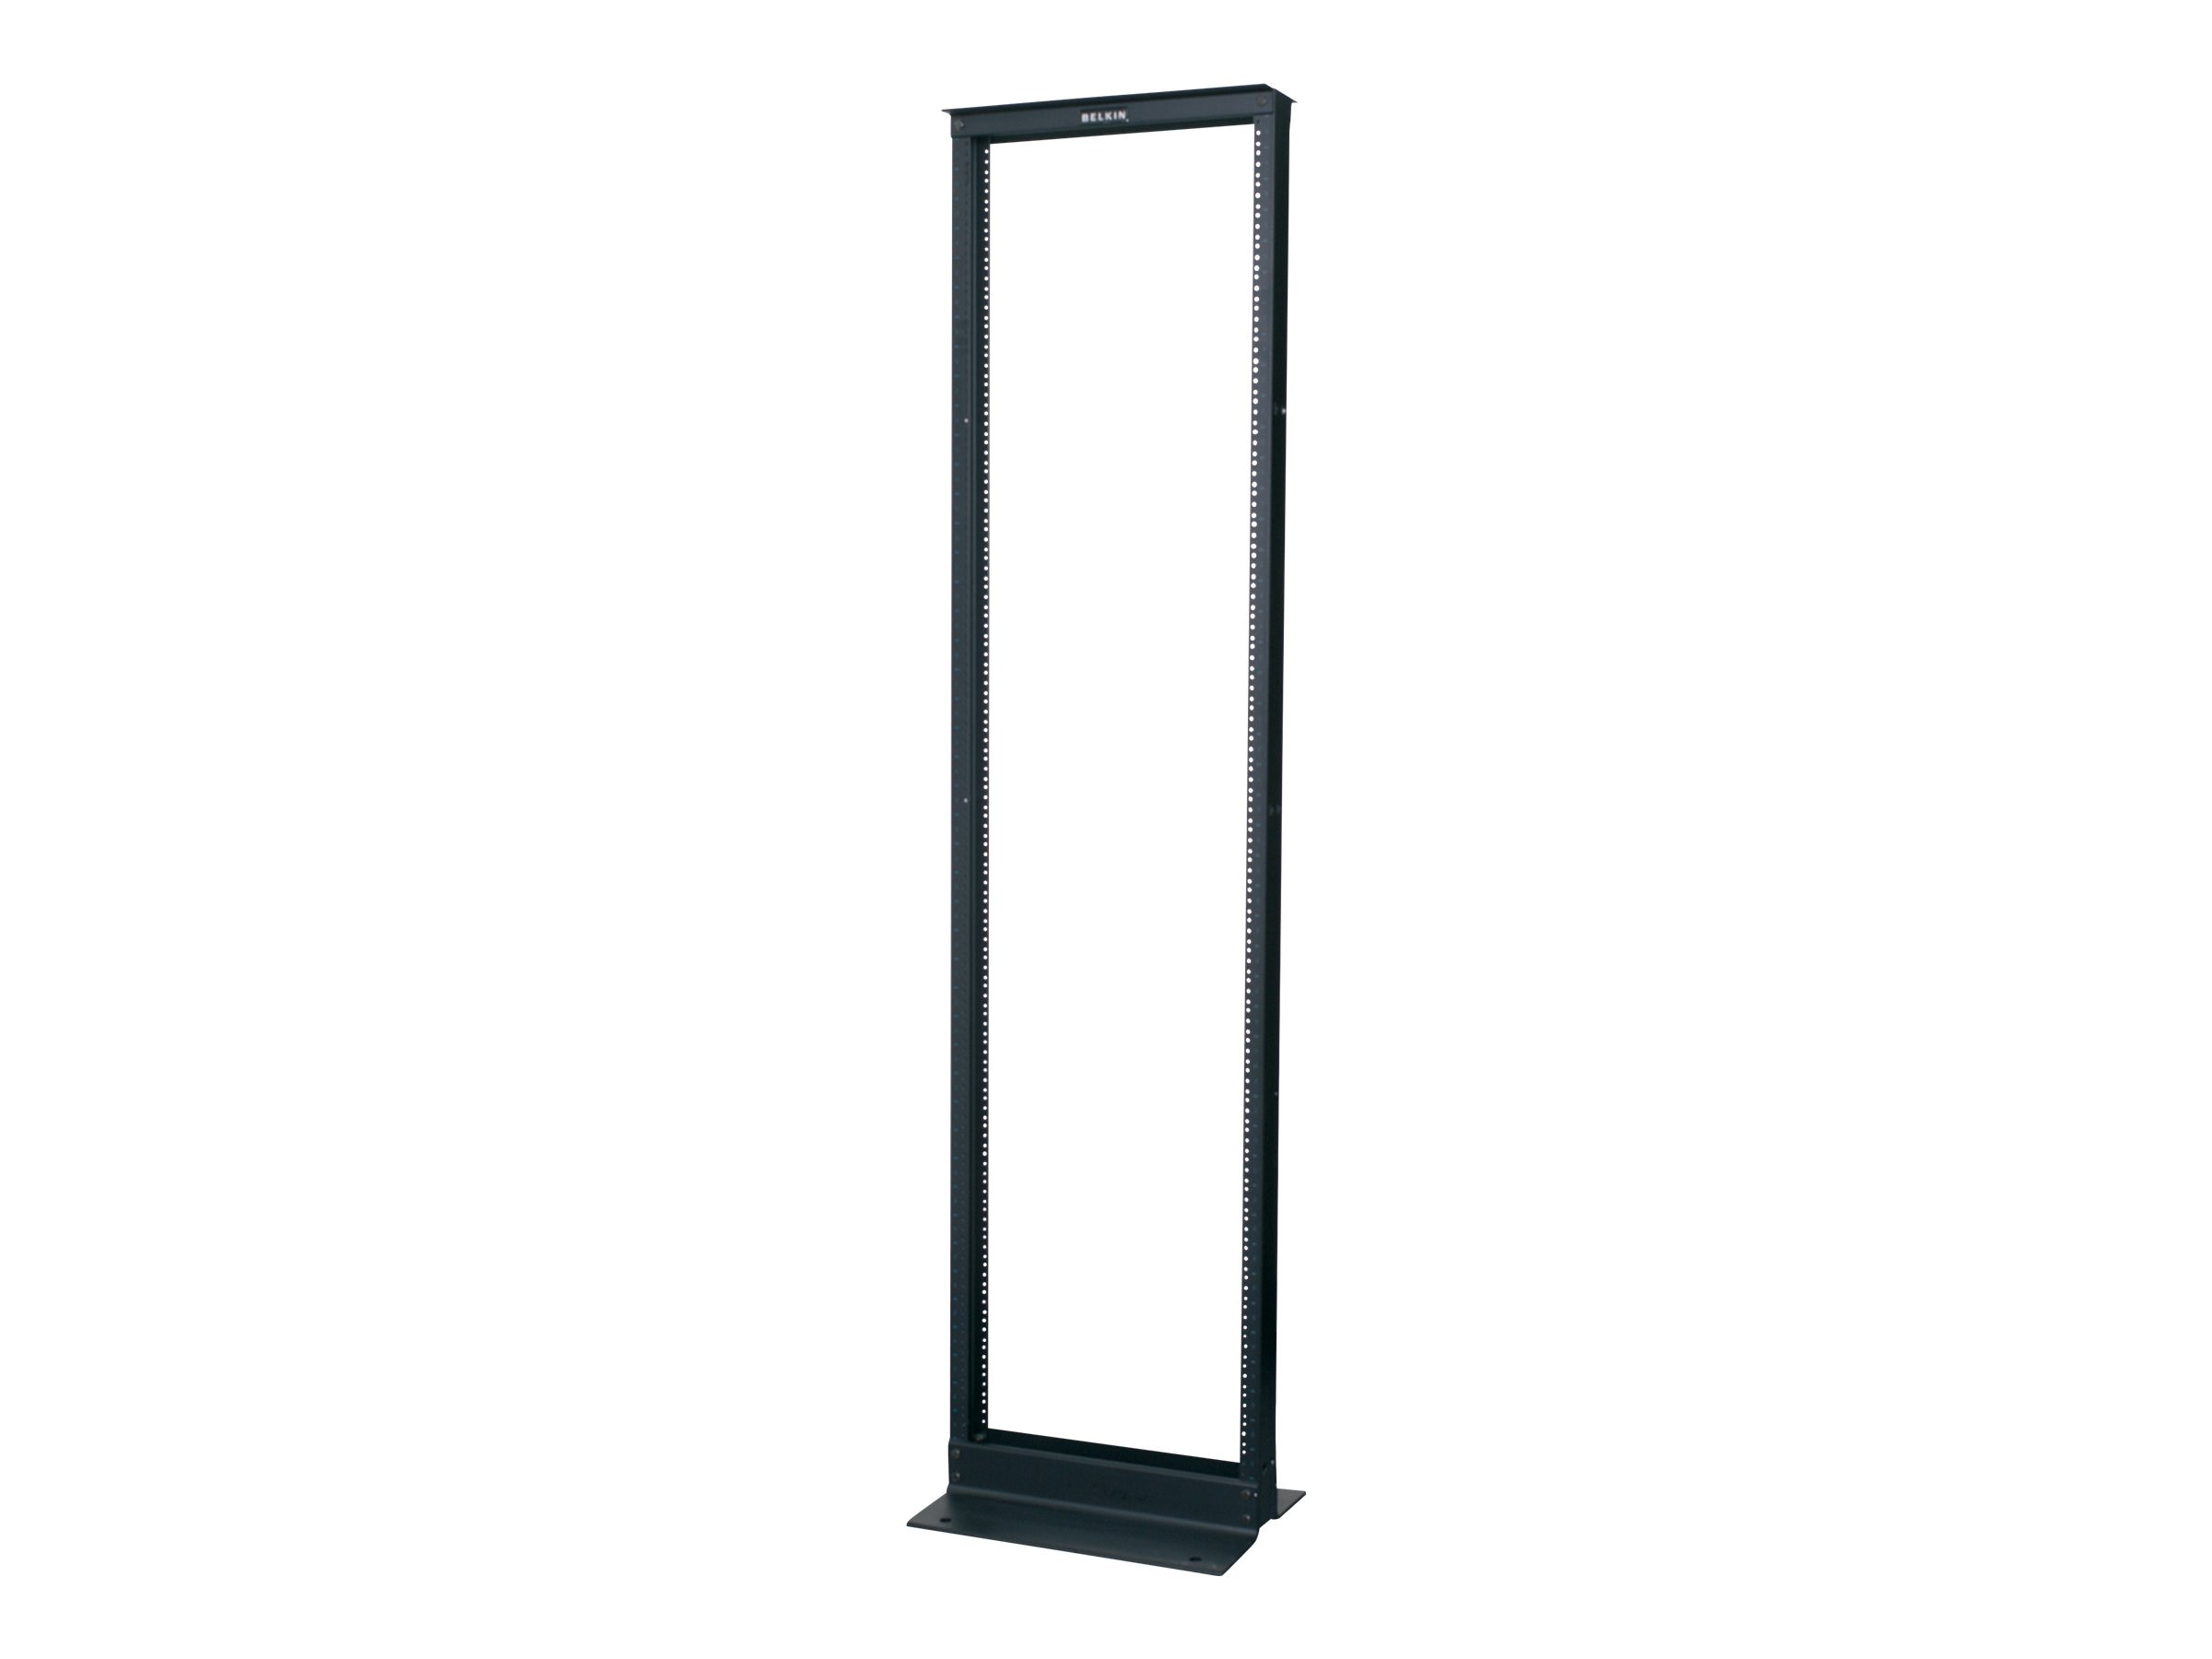 Belkin 2-Post Rack 42U 19w x 7ft. High